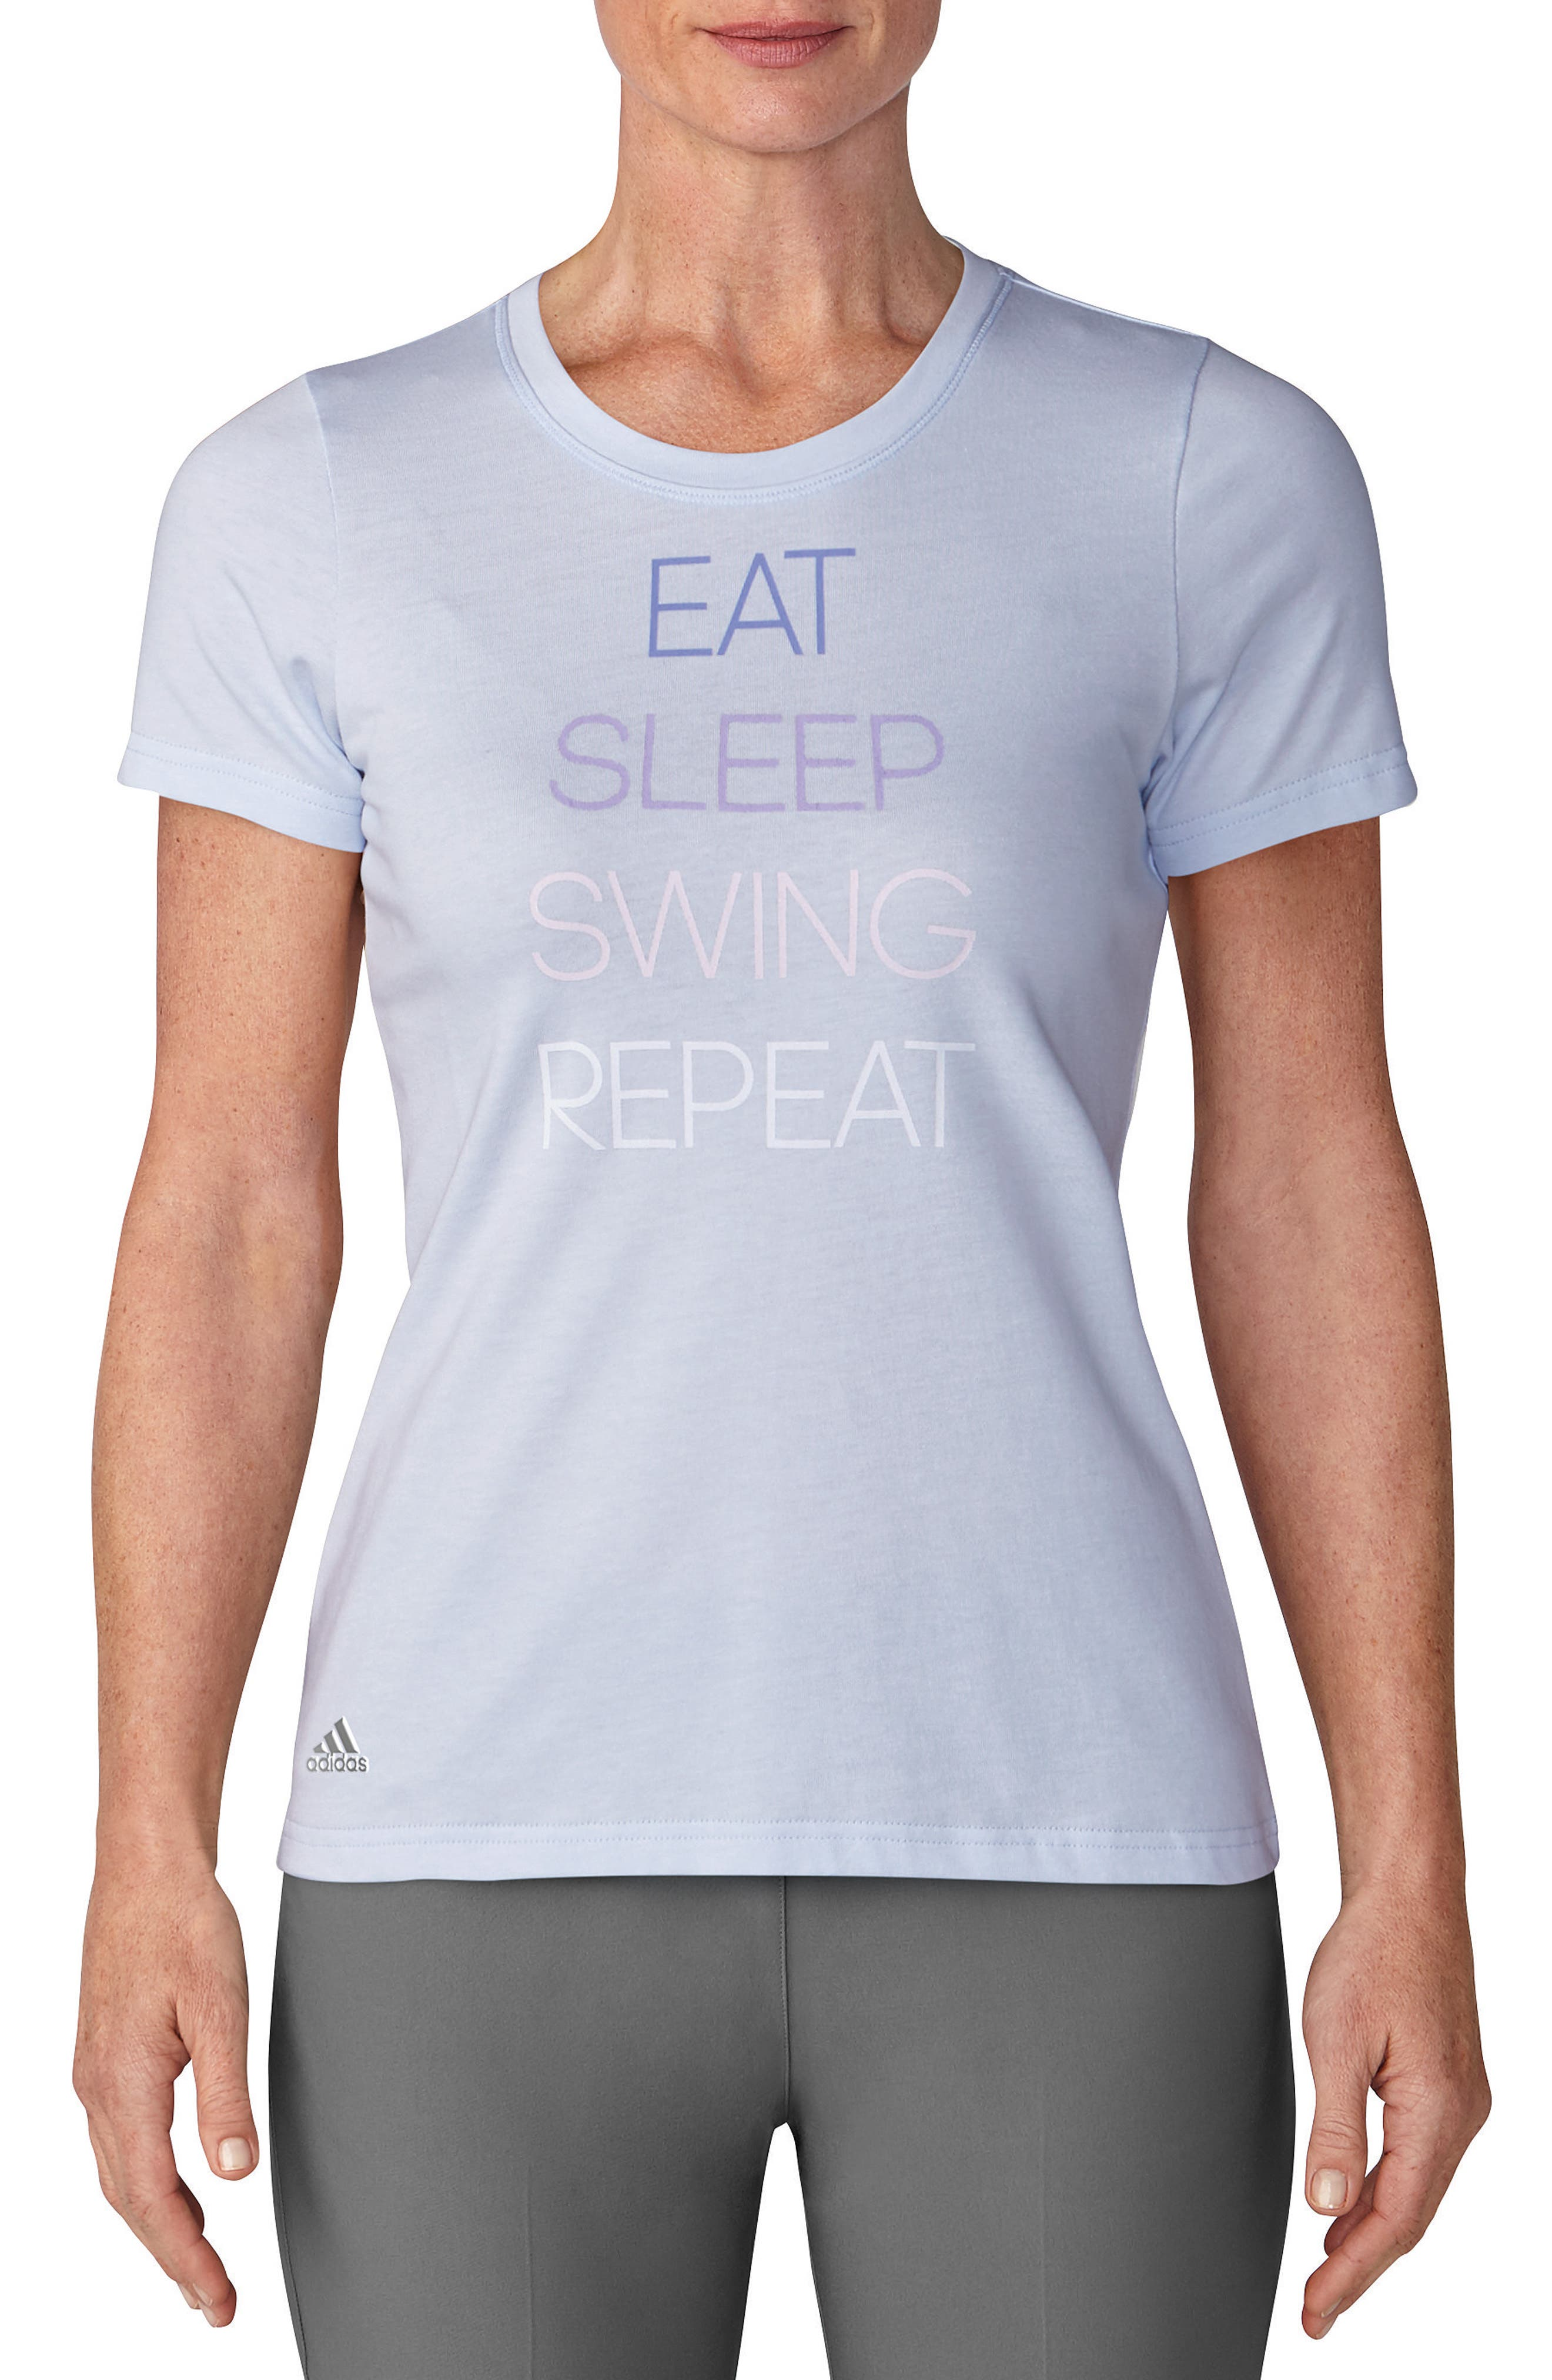 Eat, Swing, Sleep, Repeat Graphic Tee,                             Main thumbnail 1, color,                             451